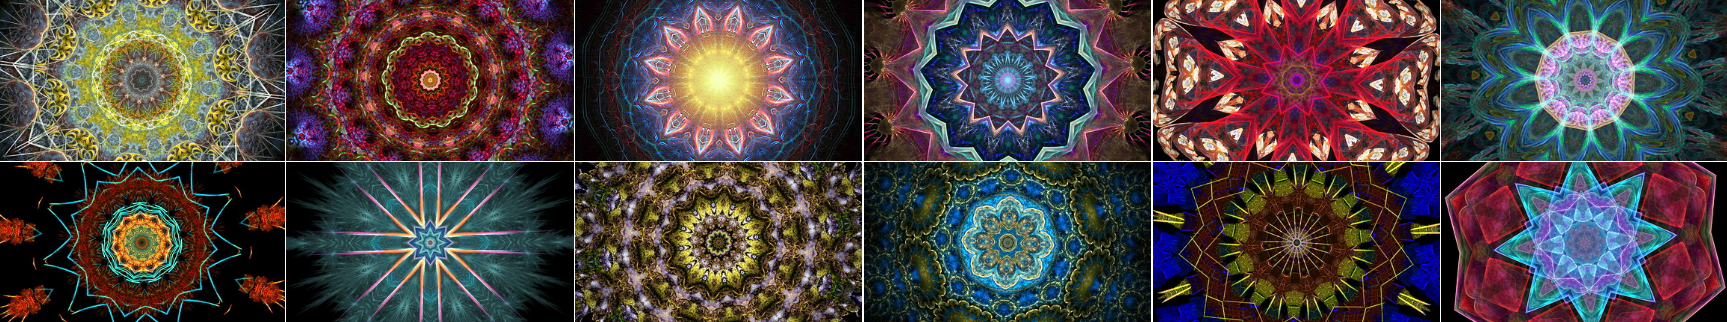 Small Screenshots from These Kaleidoscope Videos